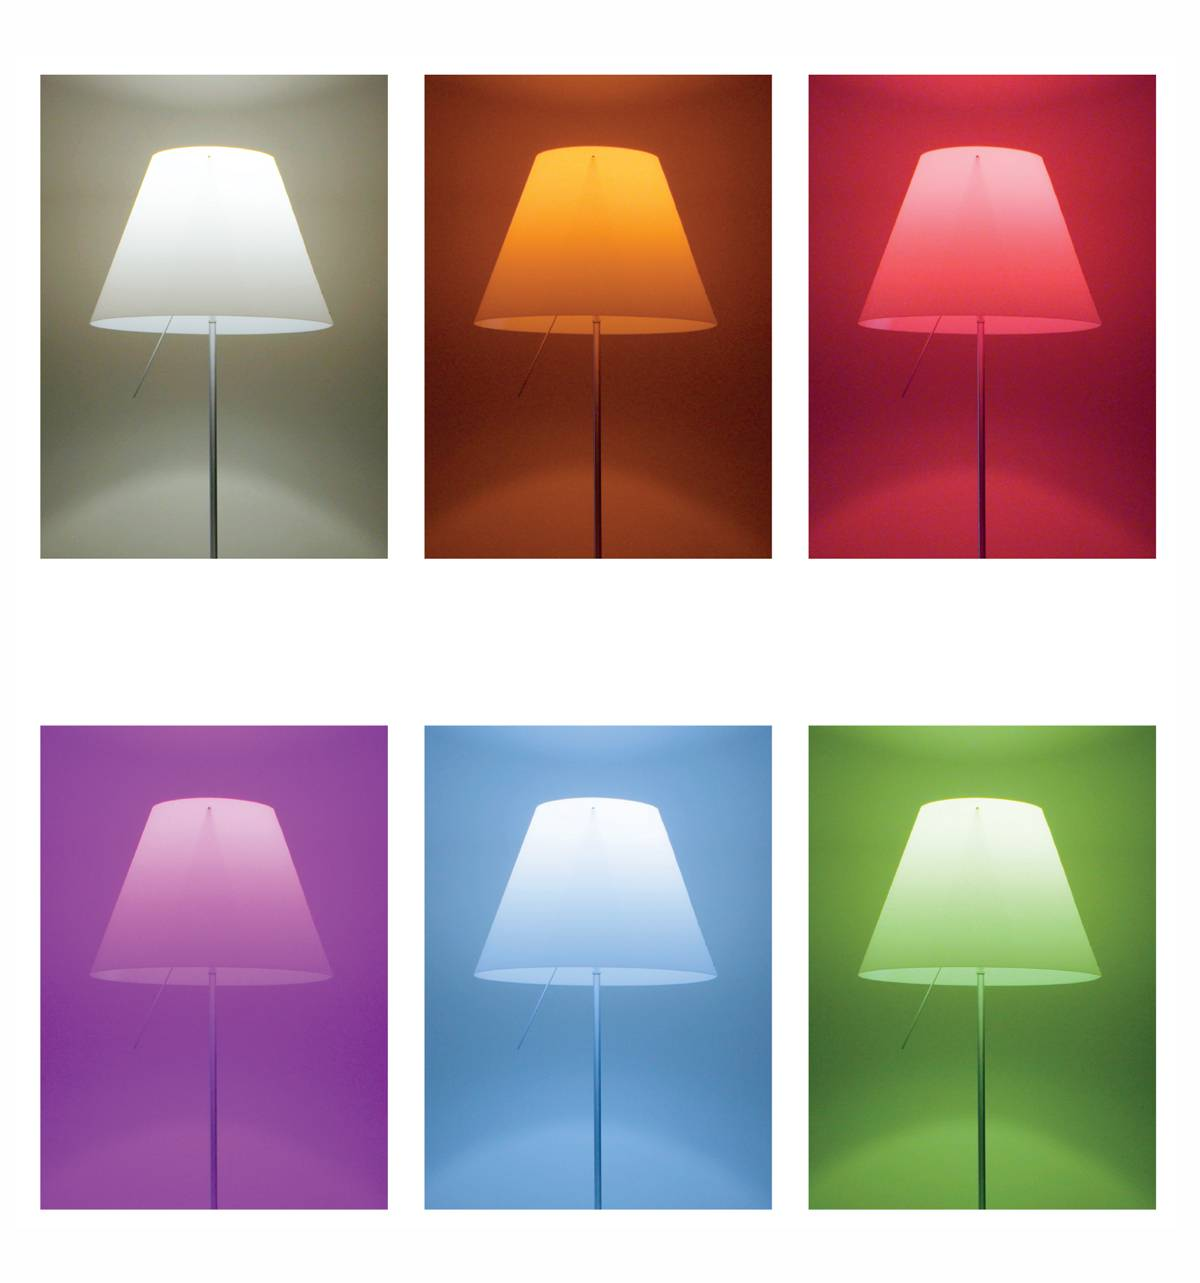 1 Costanza floor lamp friends of hue Luceplan